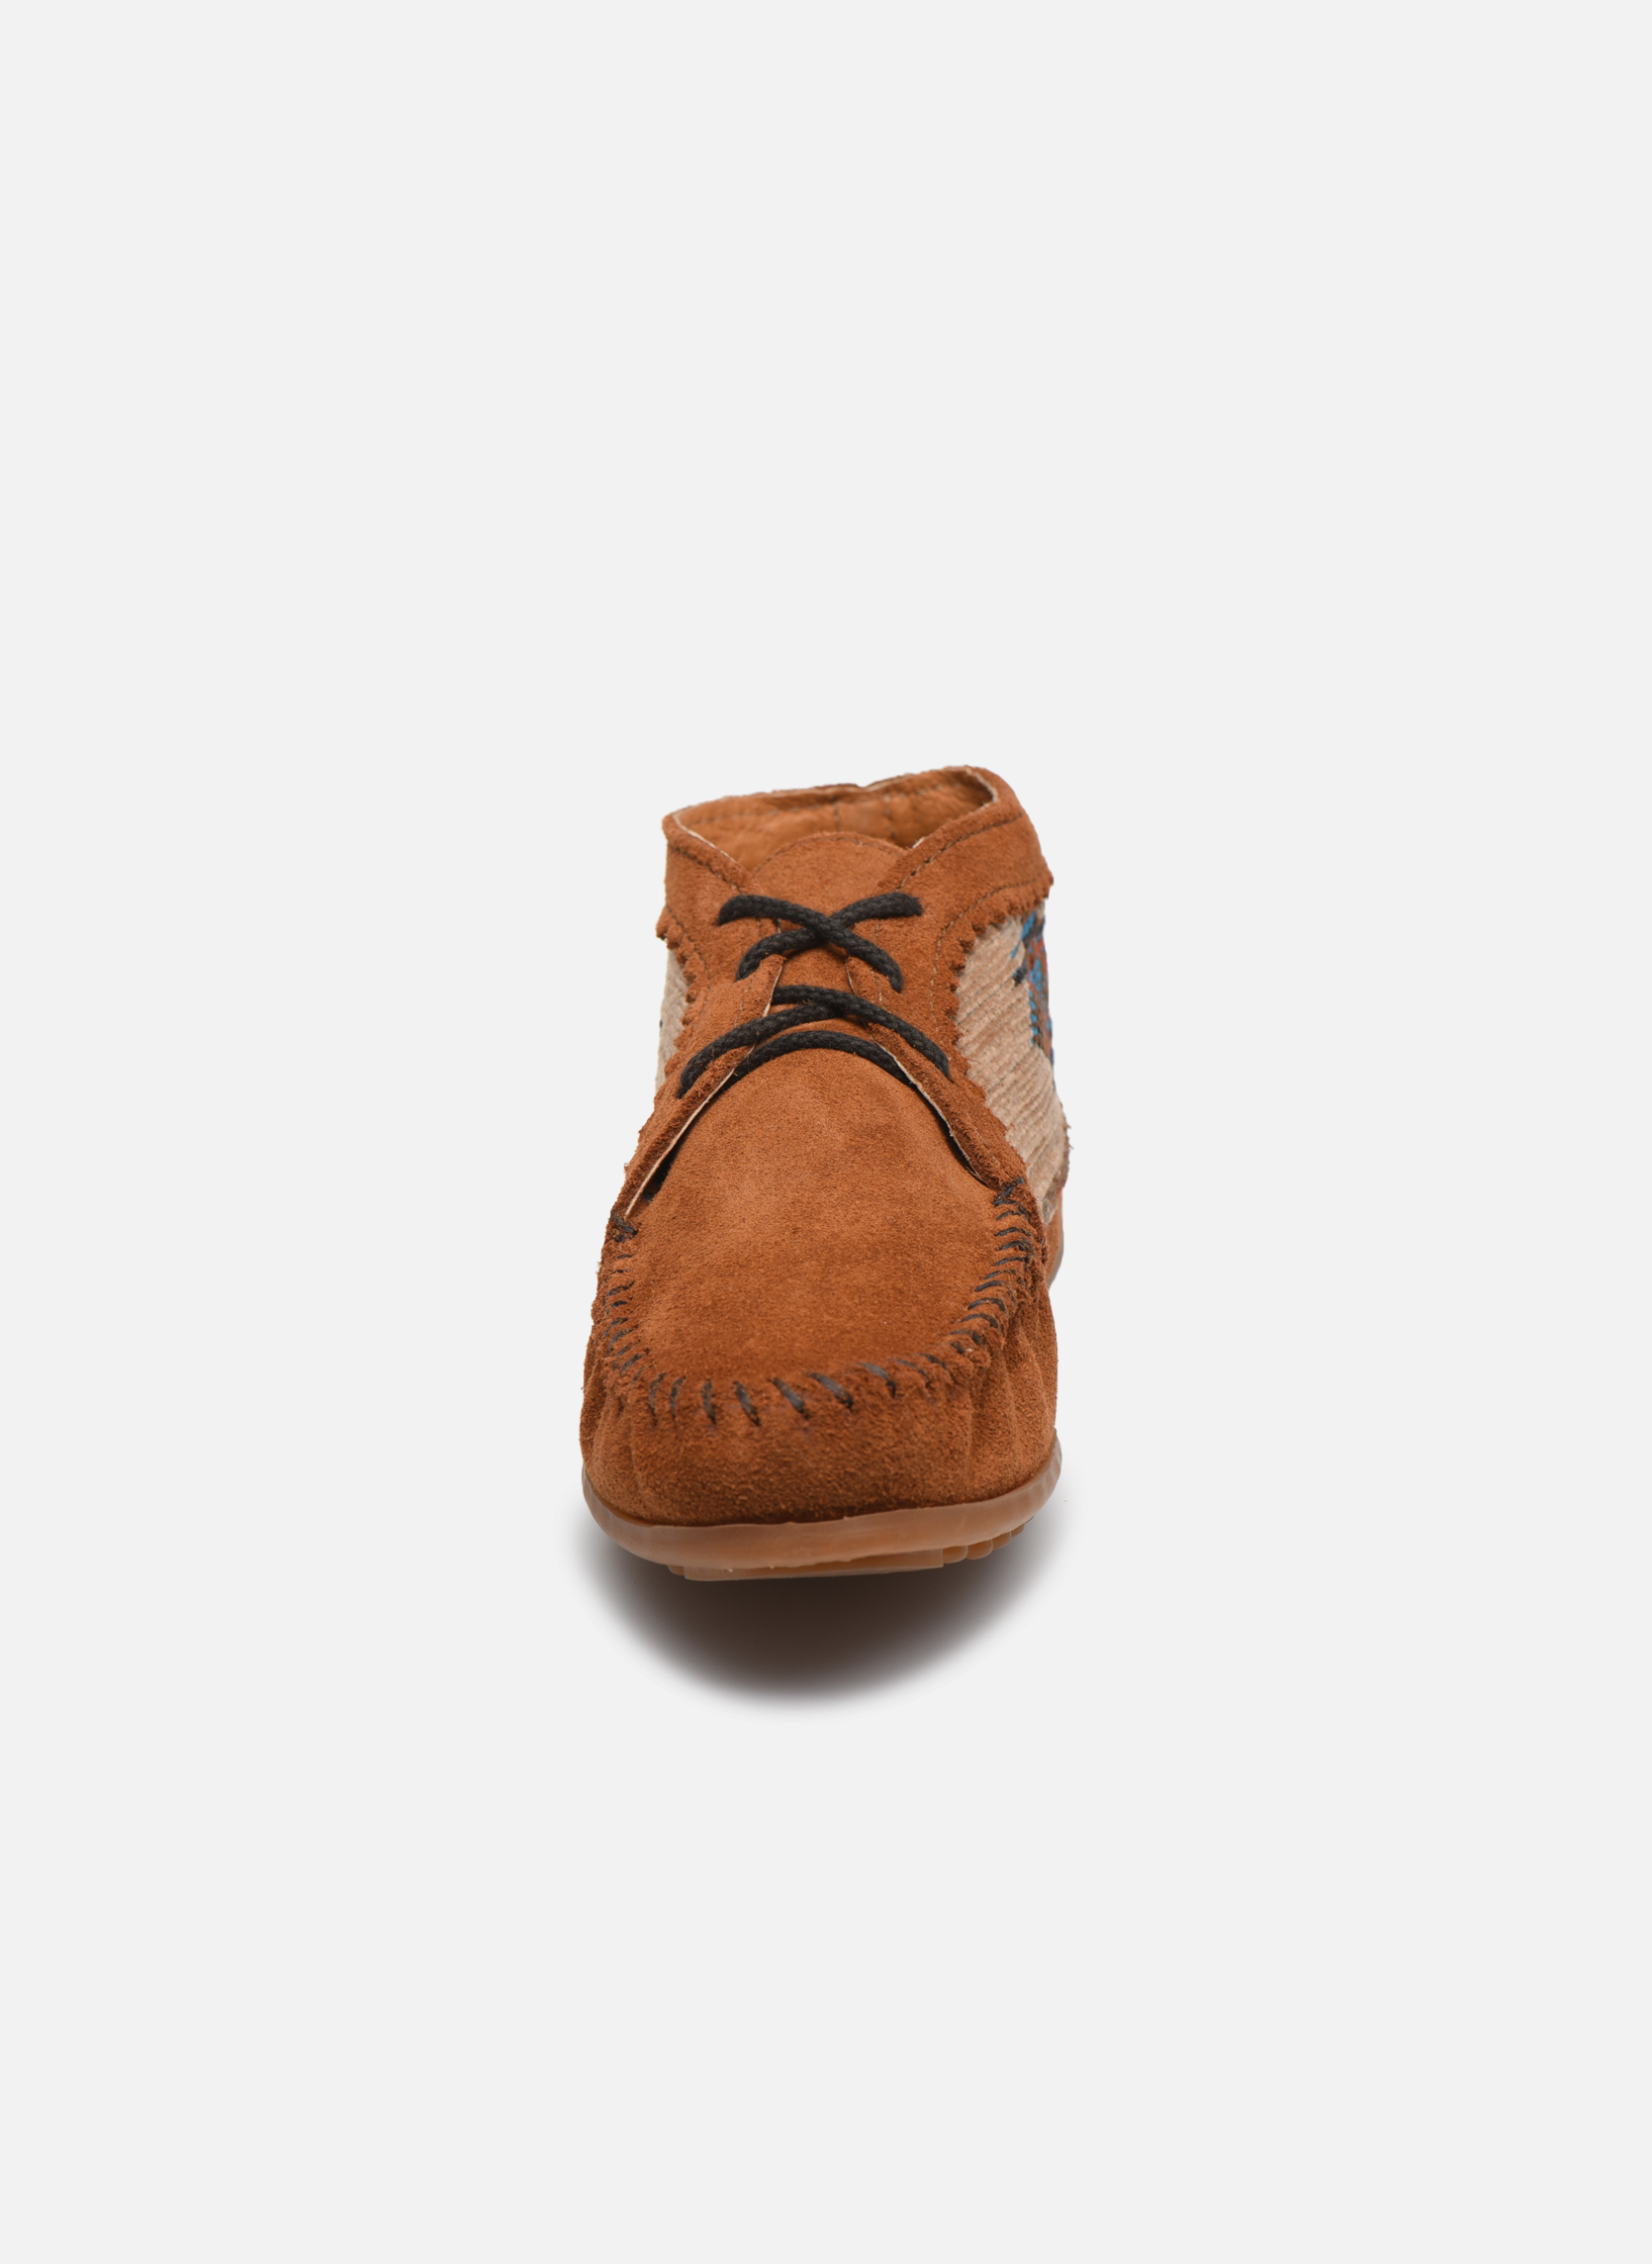 EL PASO ANKLE BOOT Brown Suede